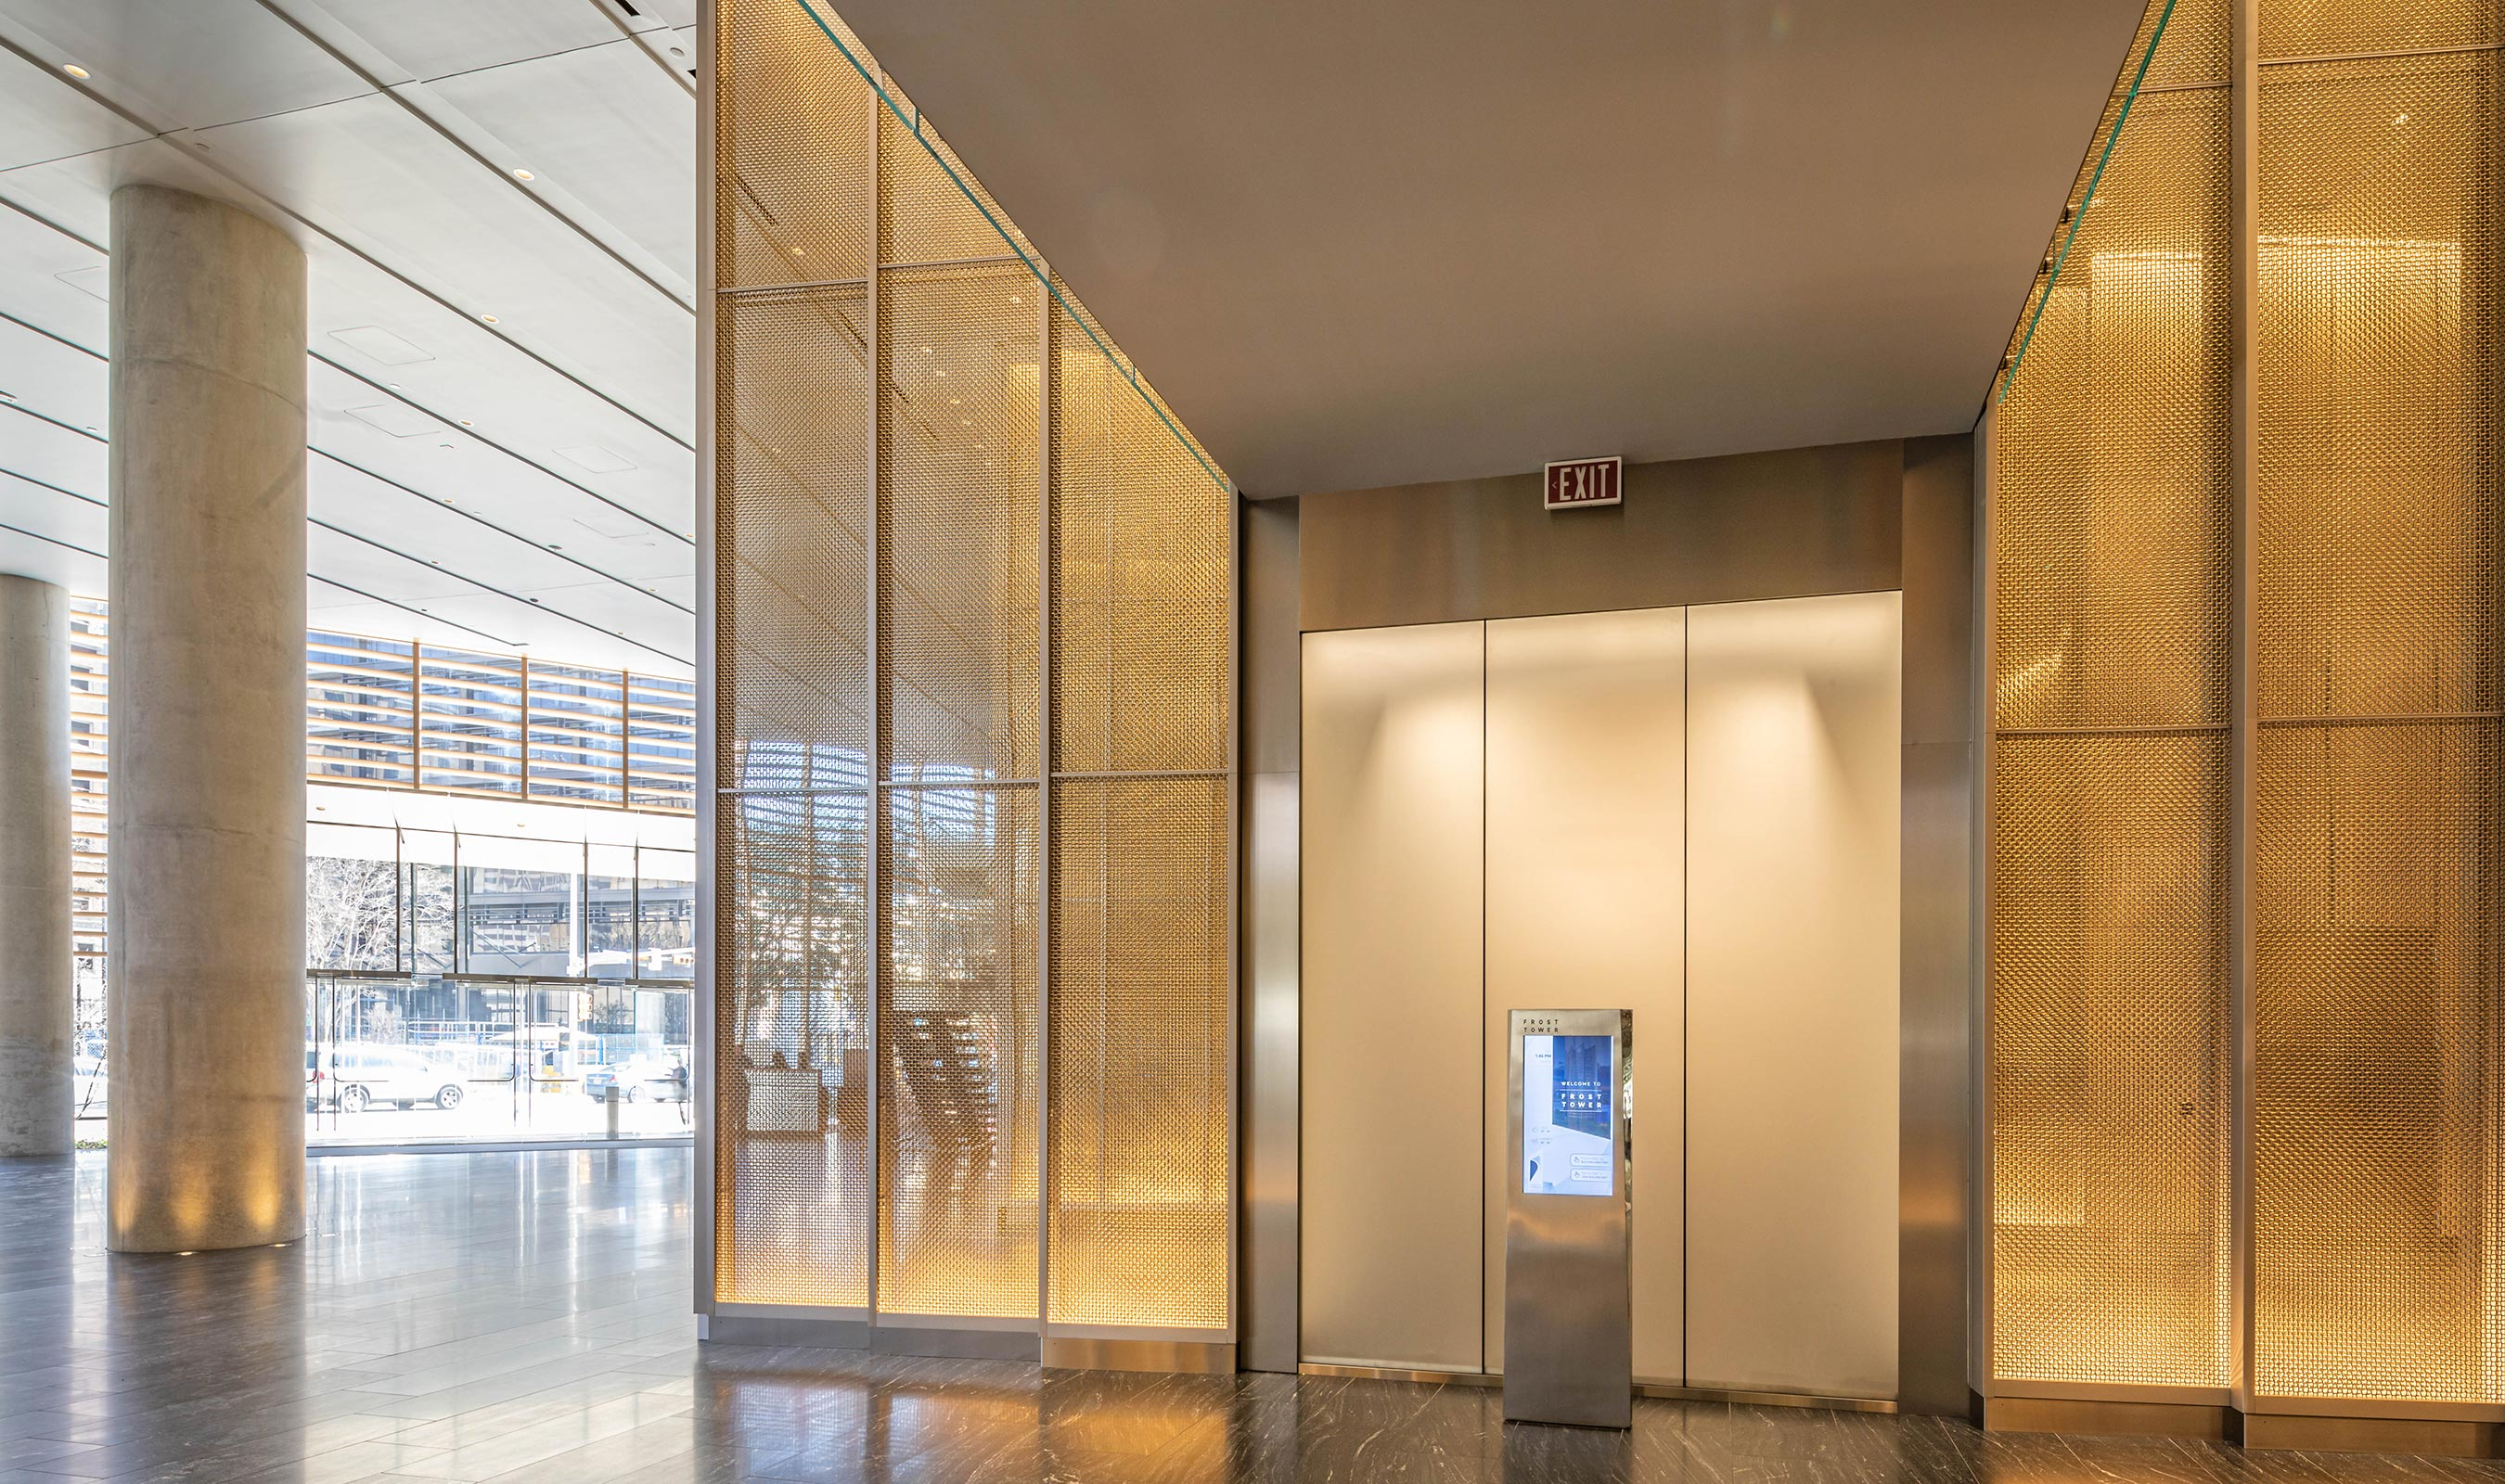 Mirrors behind M22-80 reflect and throw light to enhance the sparkle of the woven wire mesh feature walls.